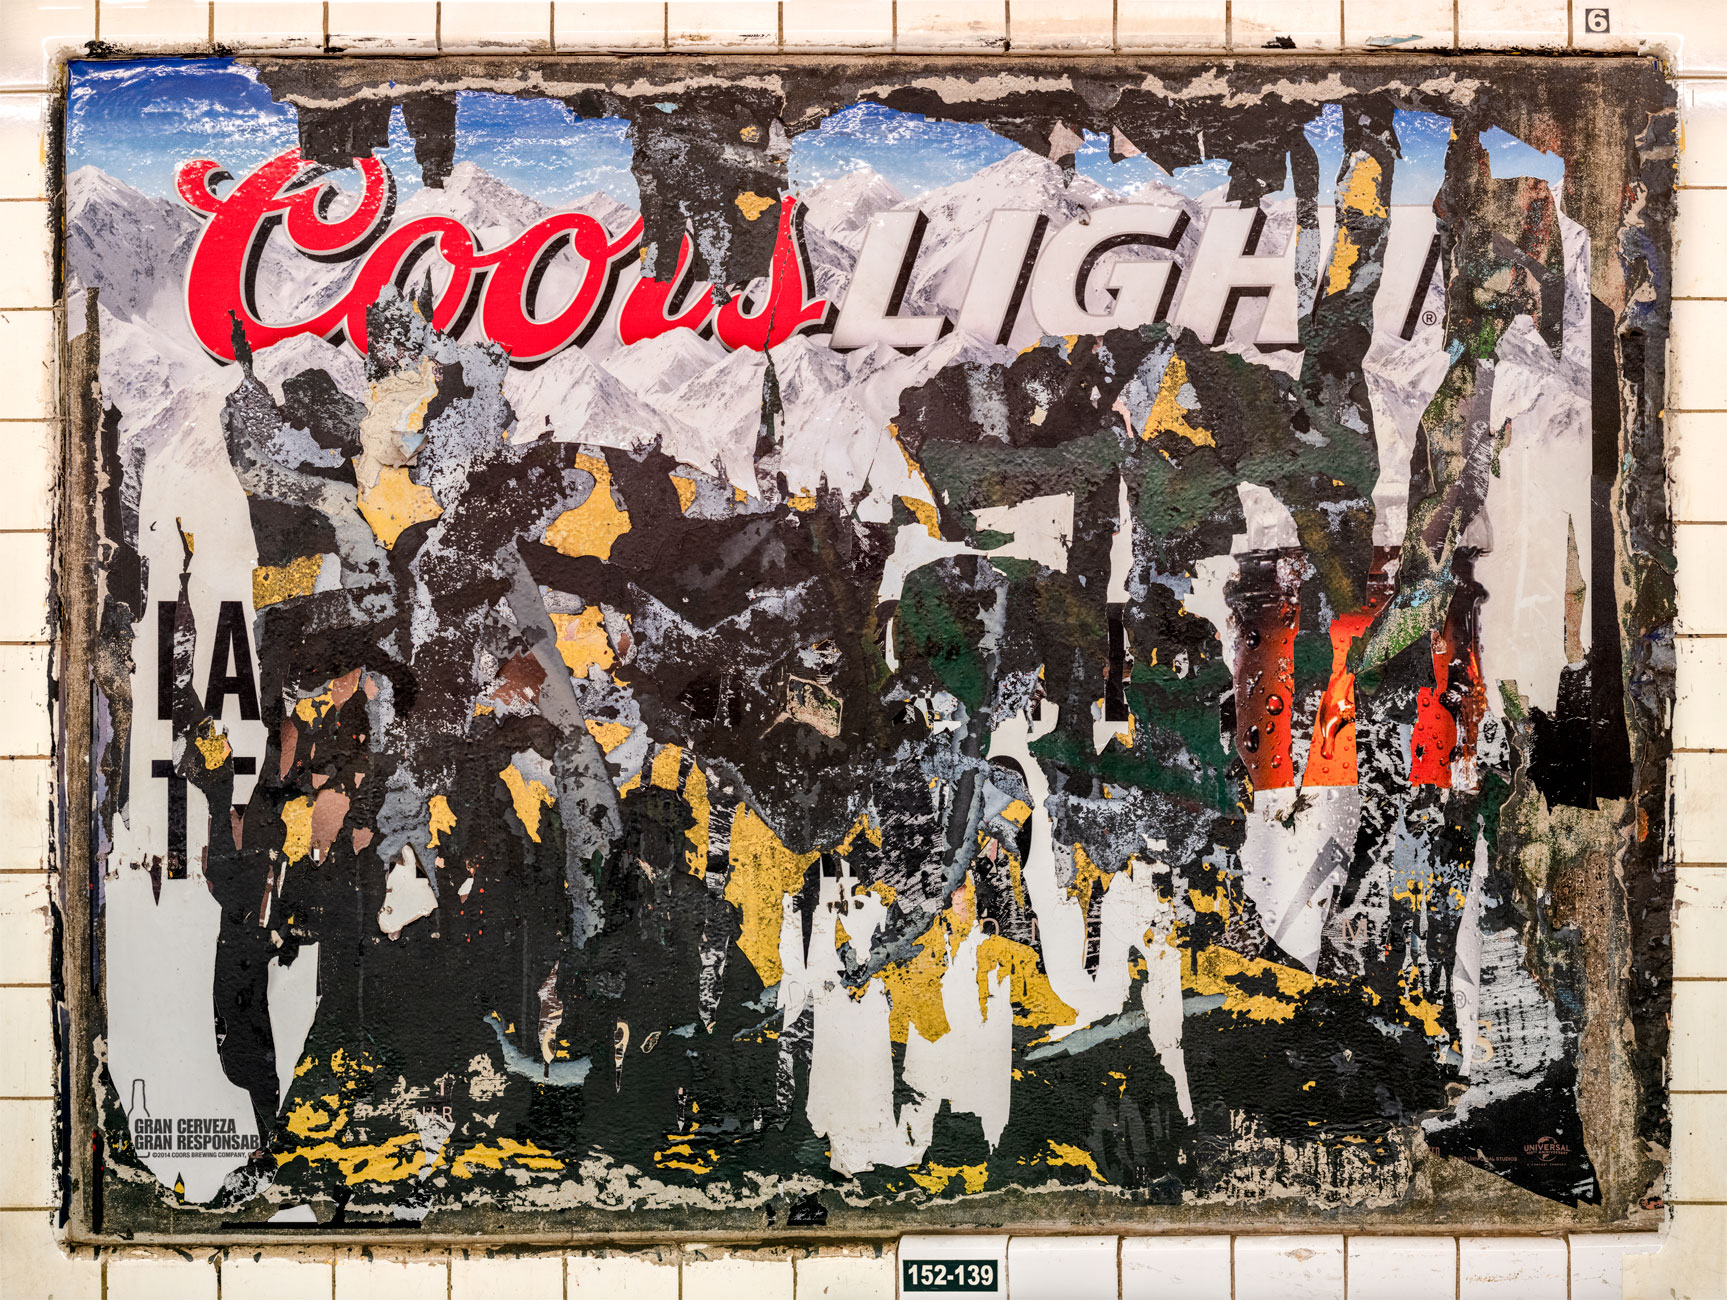 Coors Light, 135th St., IND Eighth Ave. Line